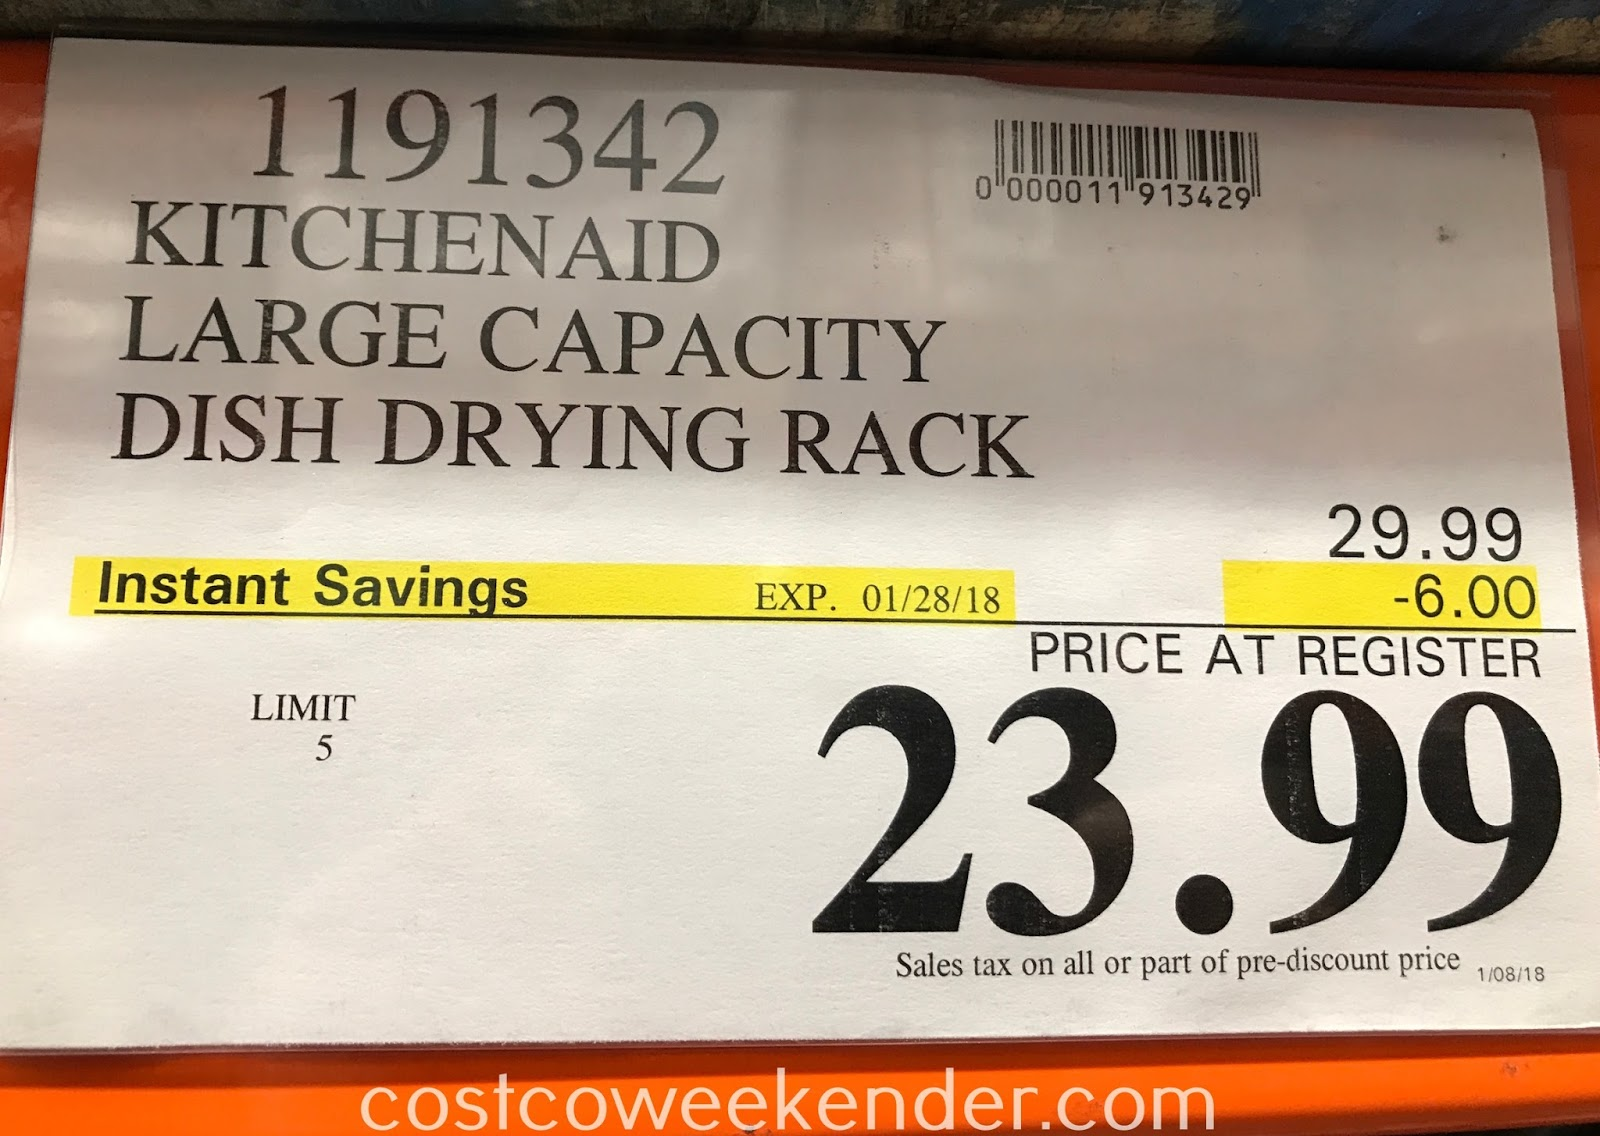 Deal for the KitchenAid Large Dish-Drying Rack at Costco